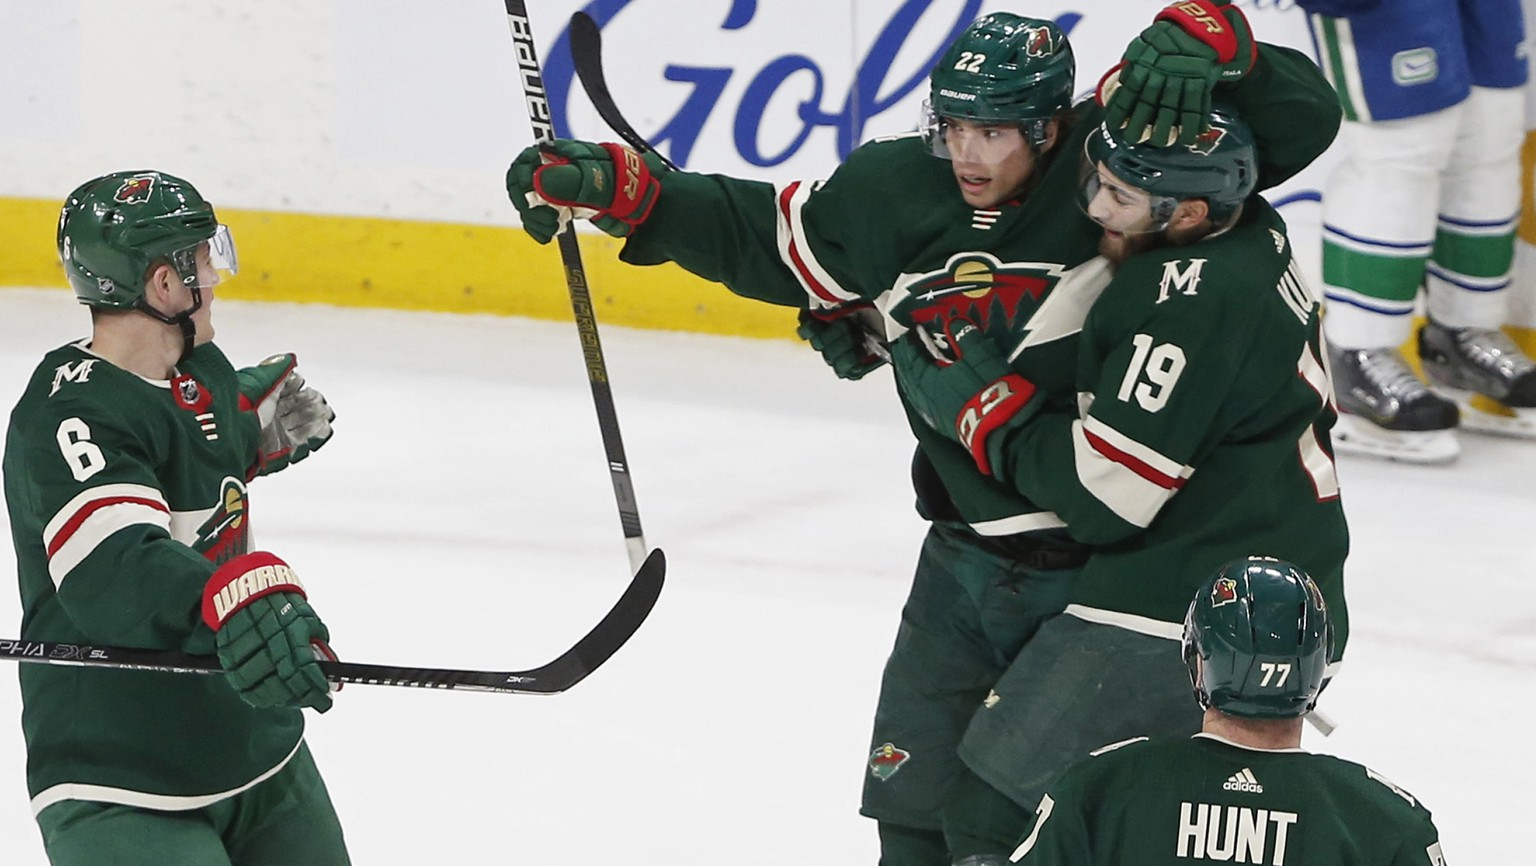 Minnesota Wild's Kevin Fiala, top left, is congratulated by teammates after his power-play goal against the Vancouver Canucks during the first period of an NHL hockey game Thursday, Feb. 6, 2020, in St. Paul, Minn. (AP Photo/Jim Mone) Kevin Fiala